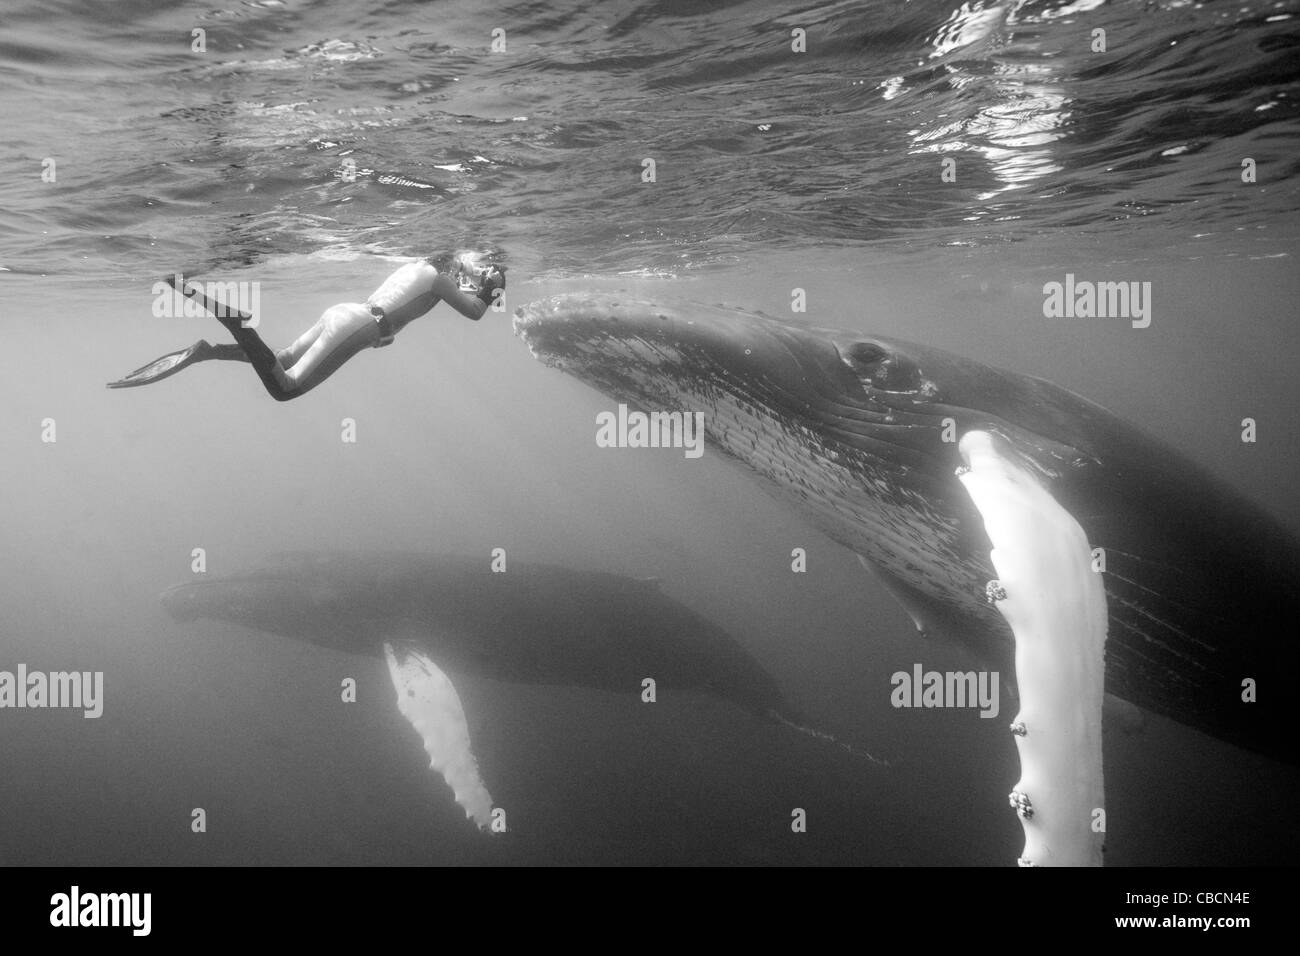 Humpback Whale and Photographer, Megaptera novaeangliae, Silver Bank, Atlantic Ocean, Dominican Republic Stock Photo